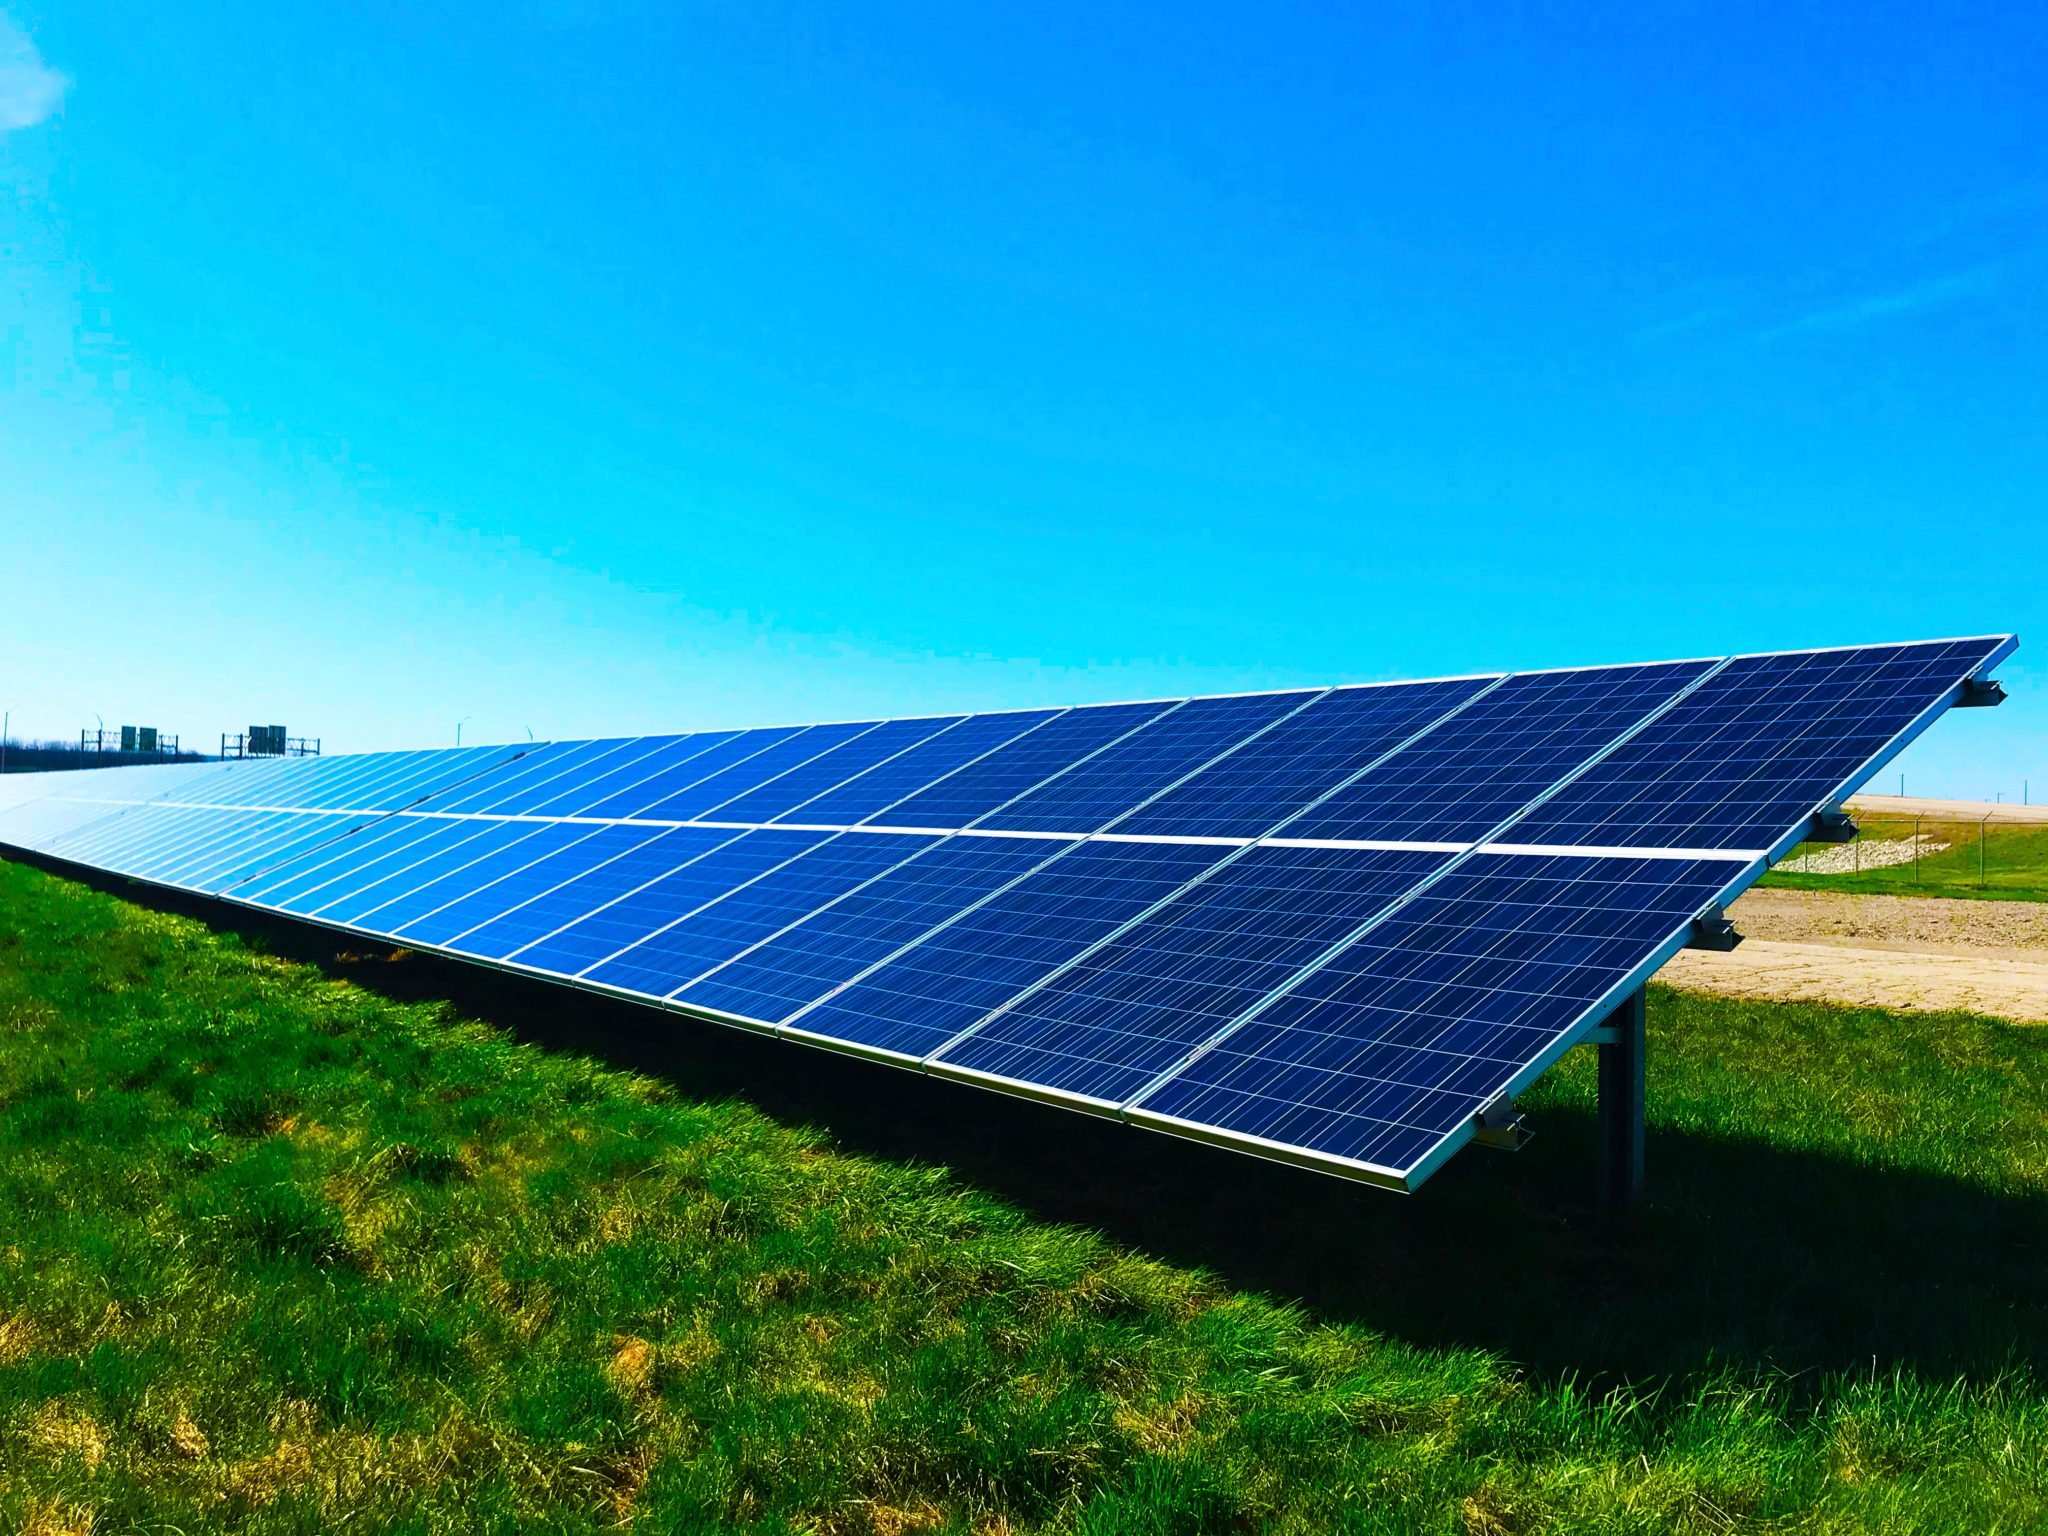 Tribal Leaders Hope Large South Dakota Solar Project Becomes Model for Others